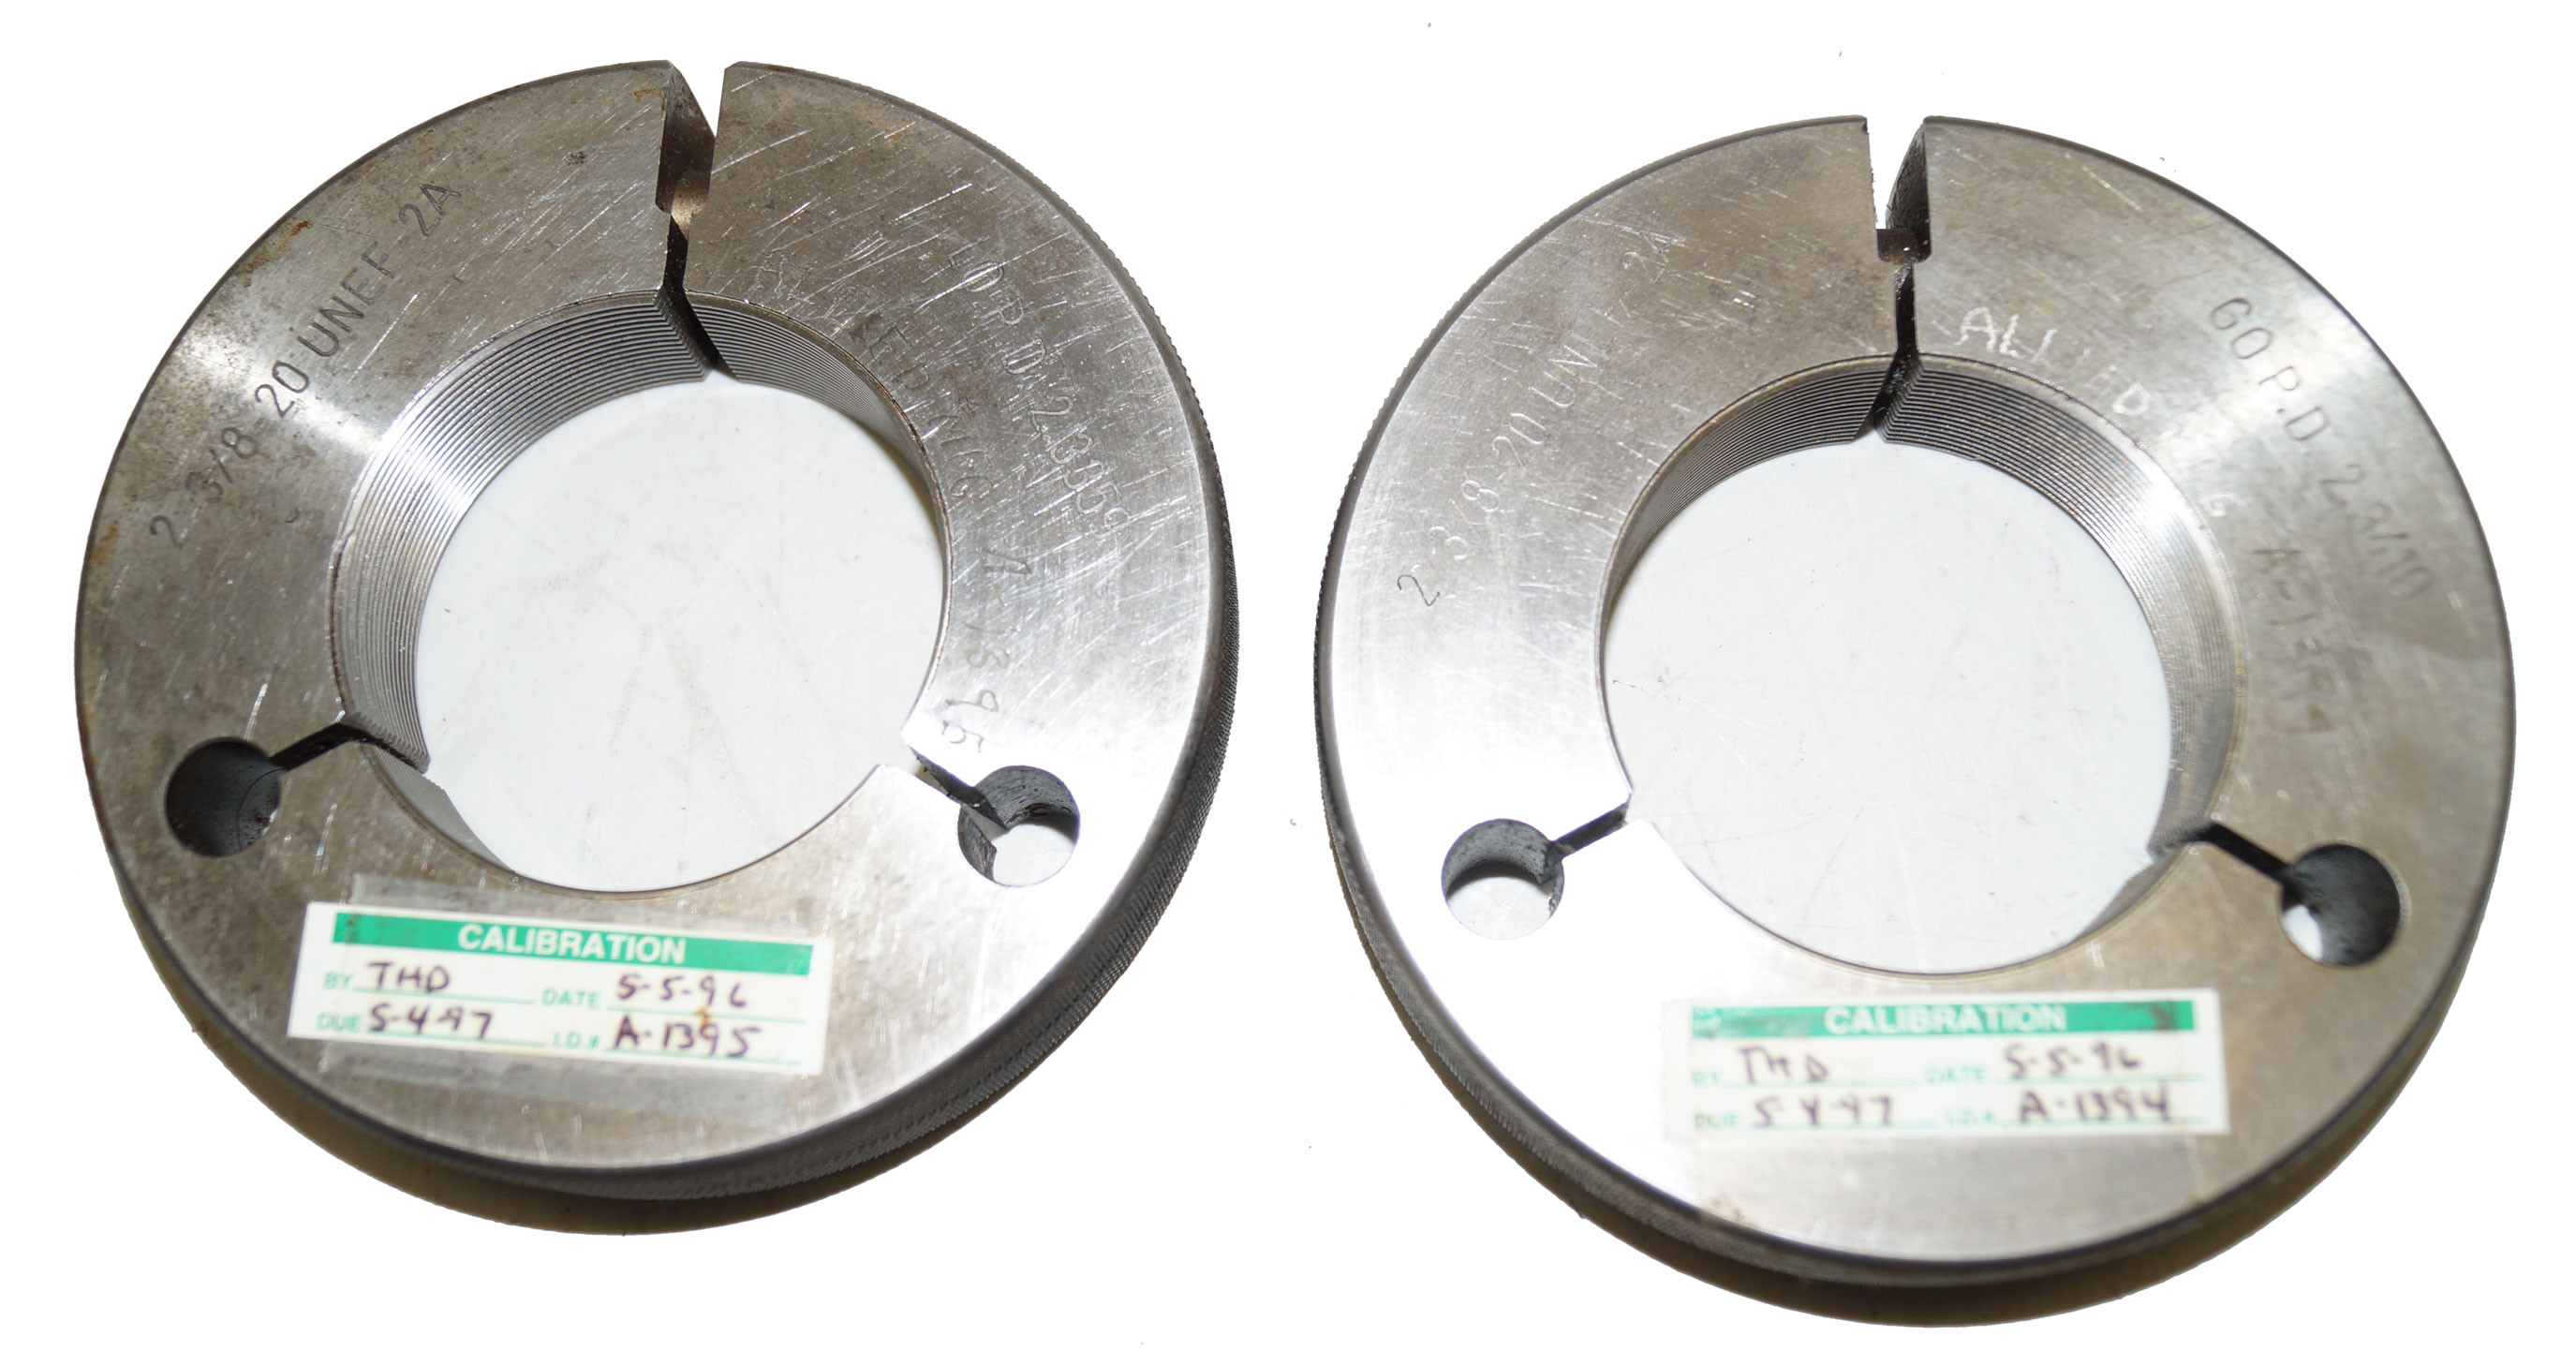 2-3/8-20 UNEF-2A Thread Ring Gage Go-NoGo Set